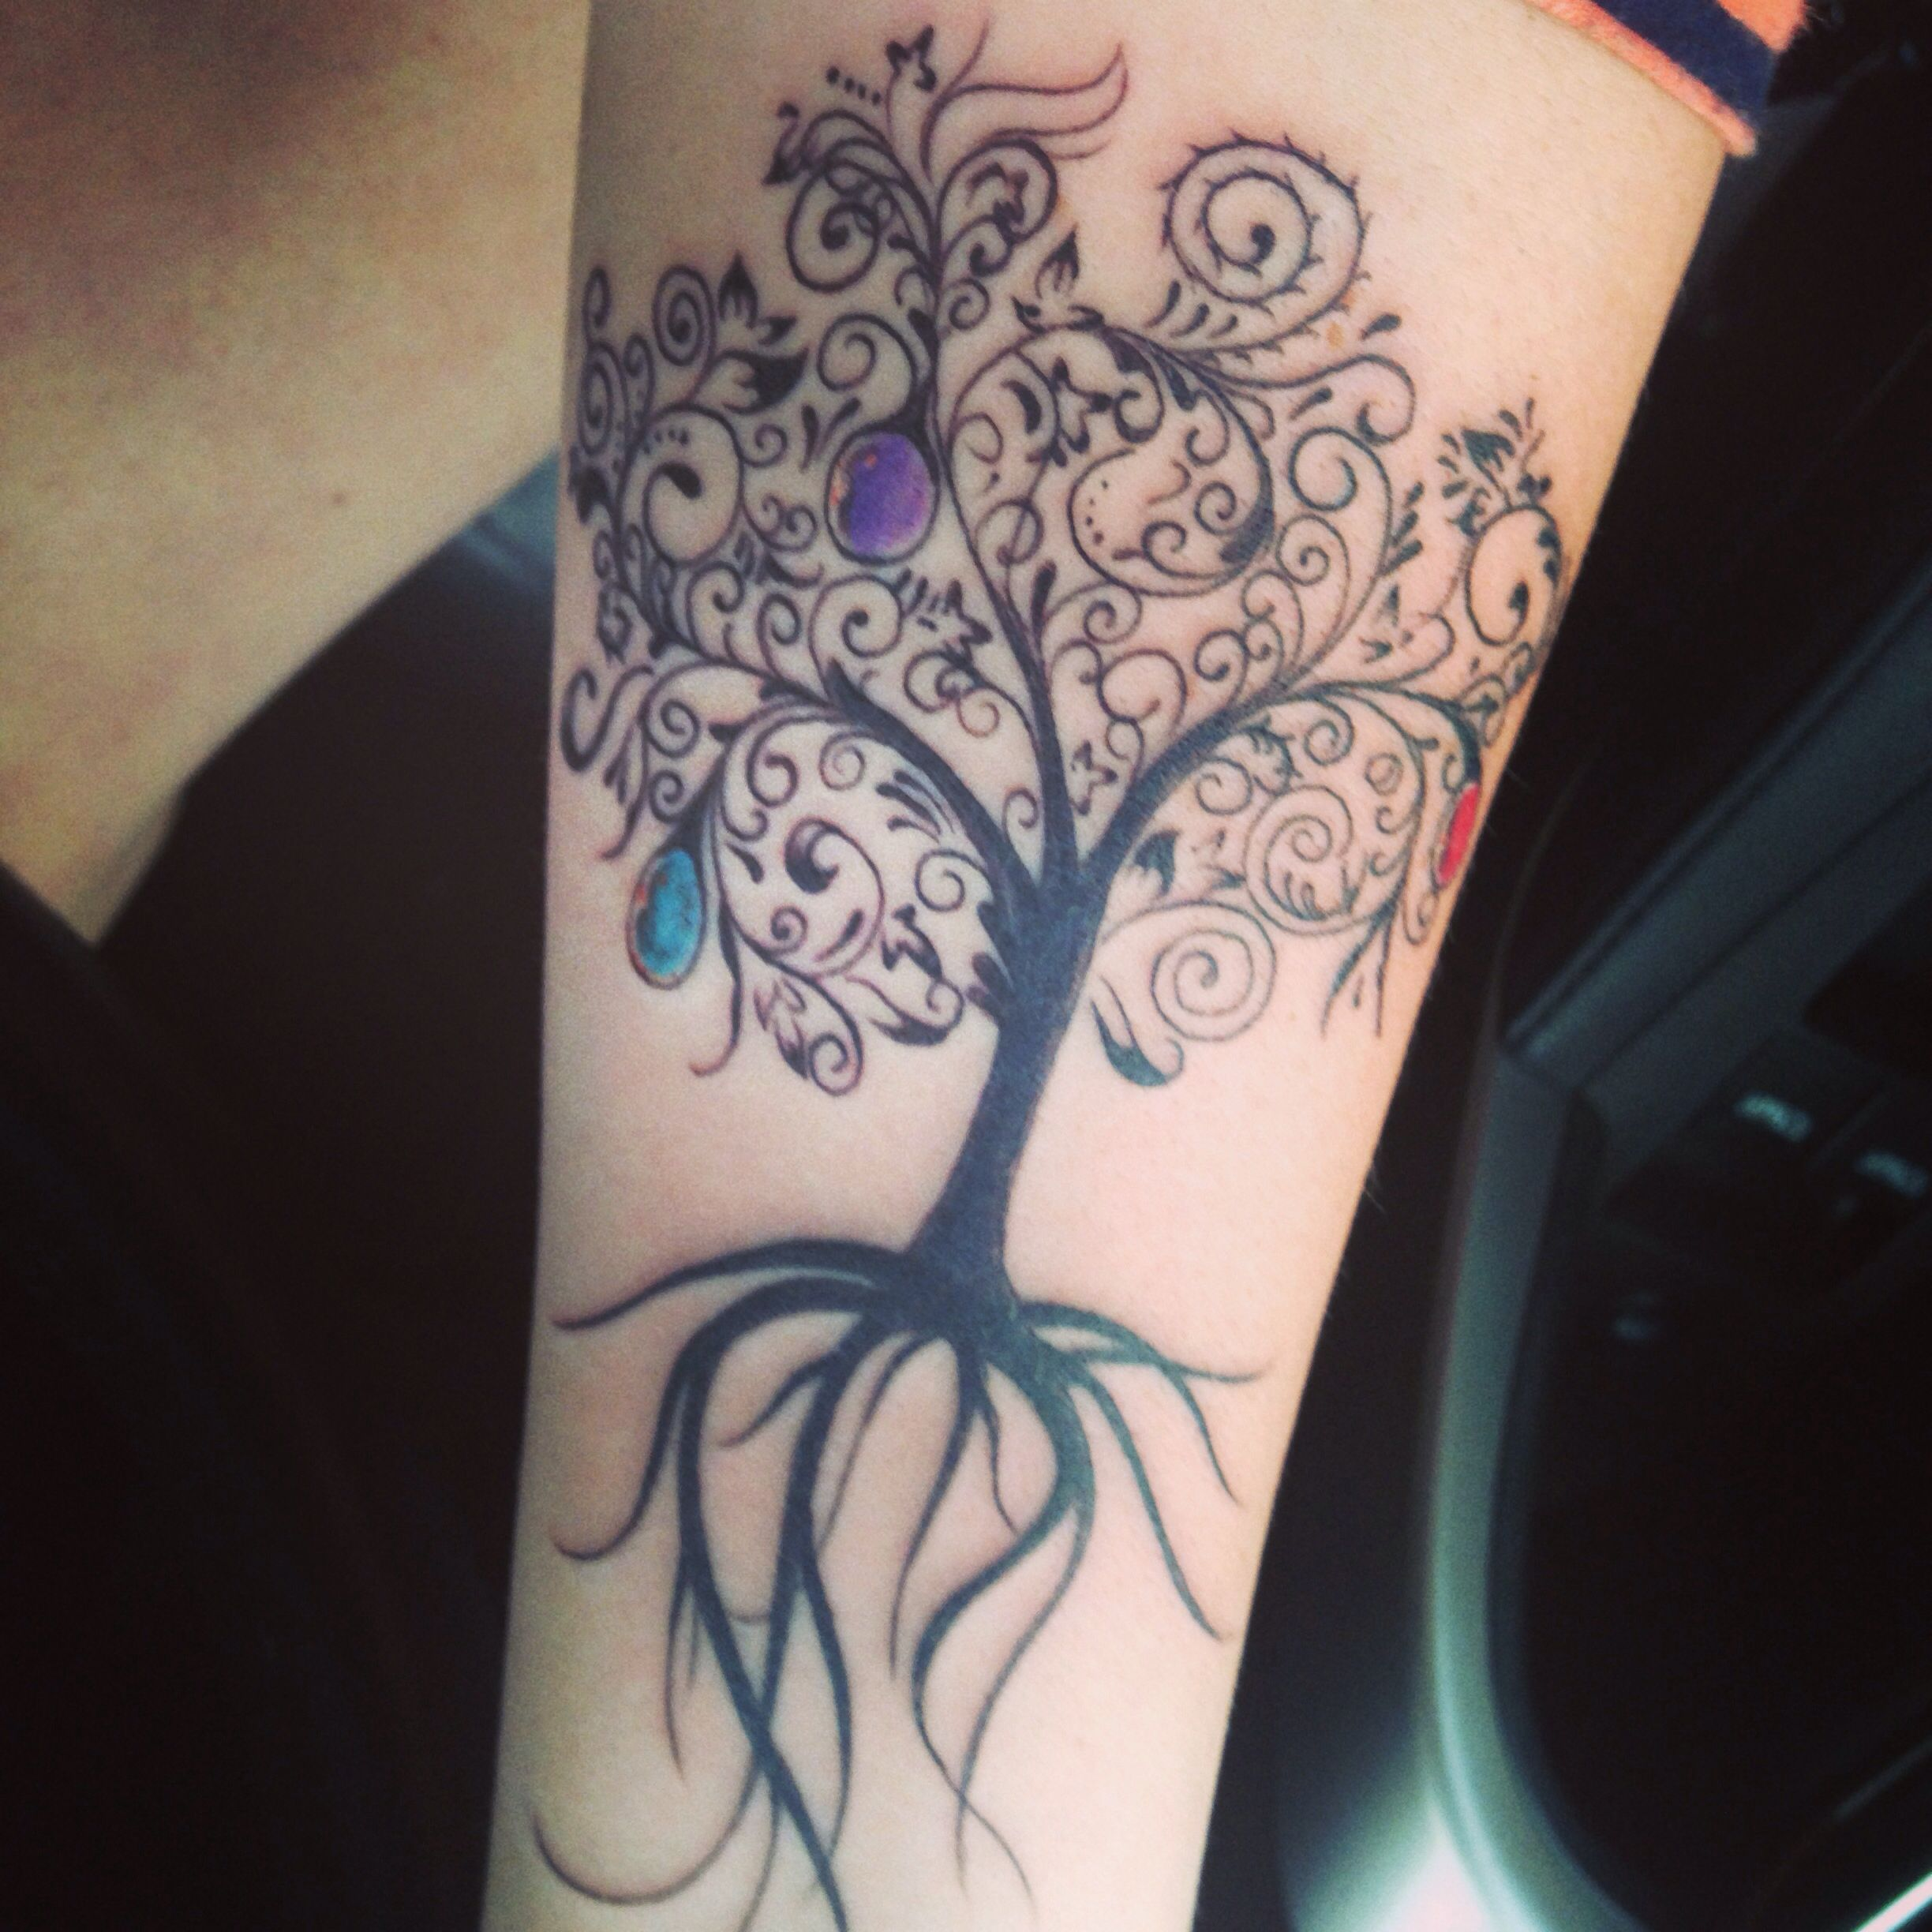 tree of life tattoo with children 39 s birthstone colors done by jett radford at weathered helm. Black Bedroom Furniture Sets. Home Design Ideas